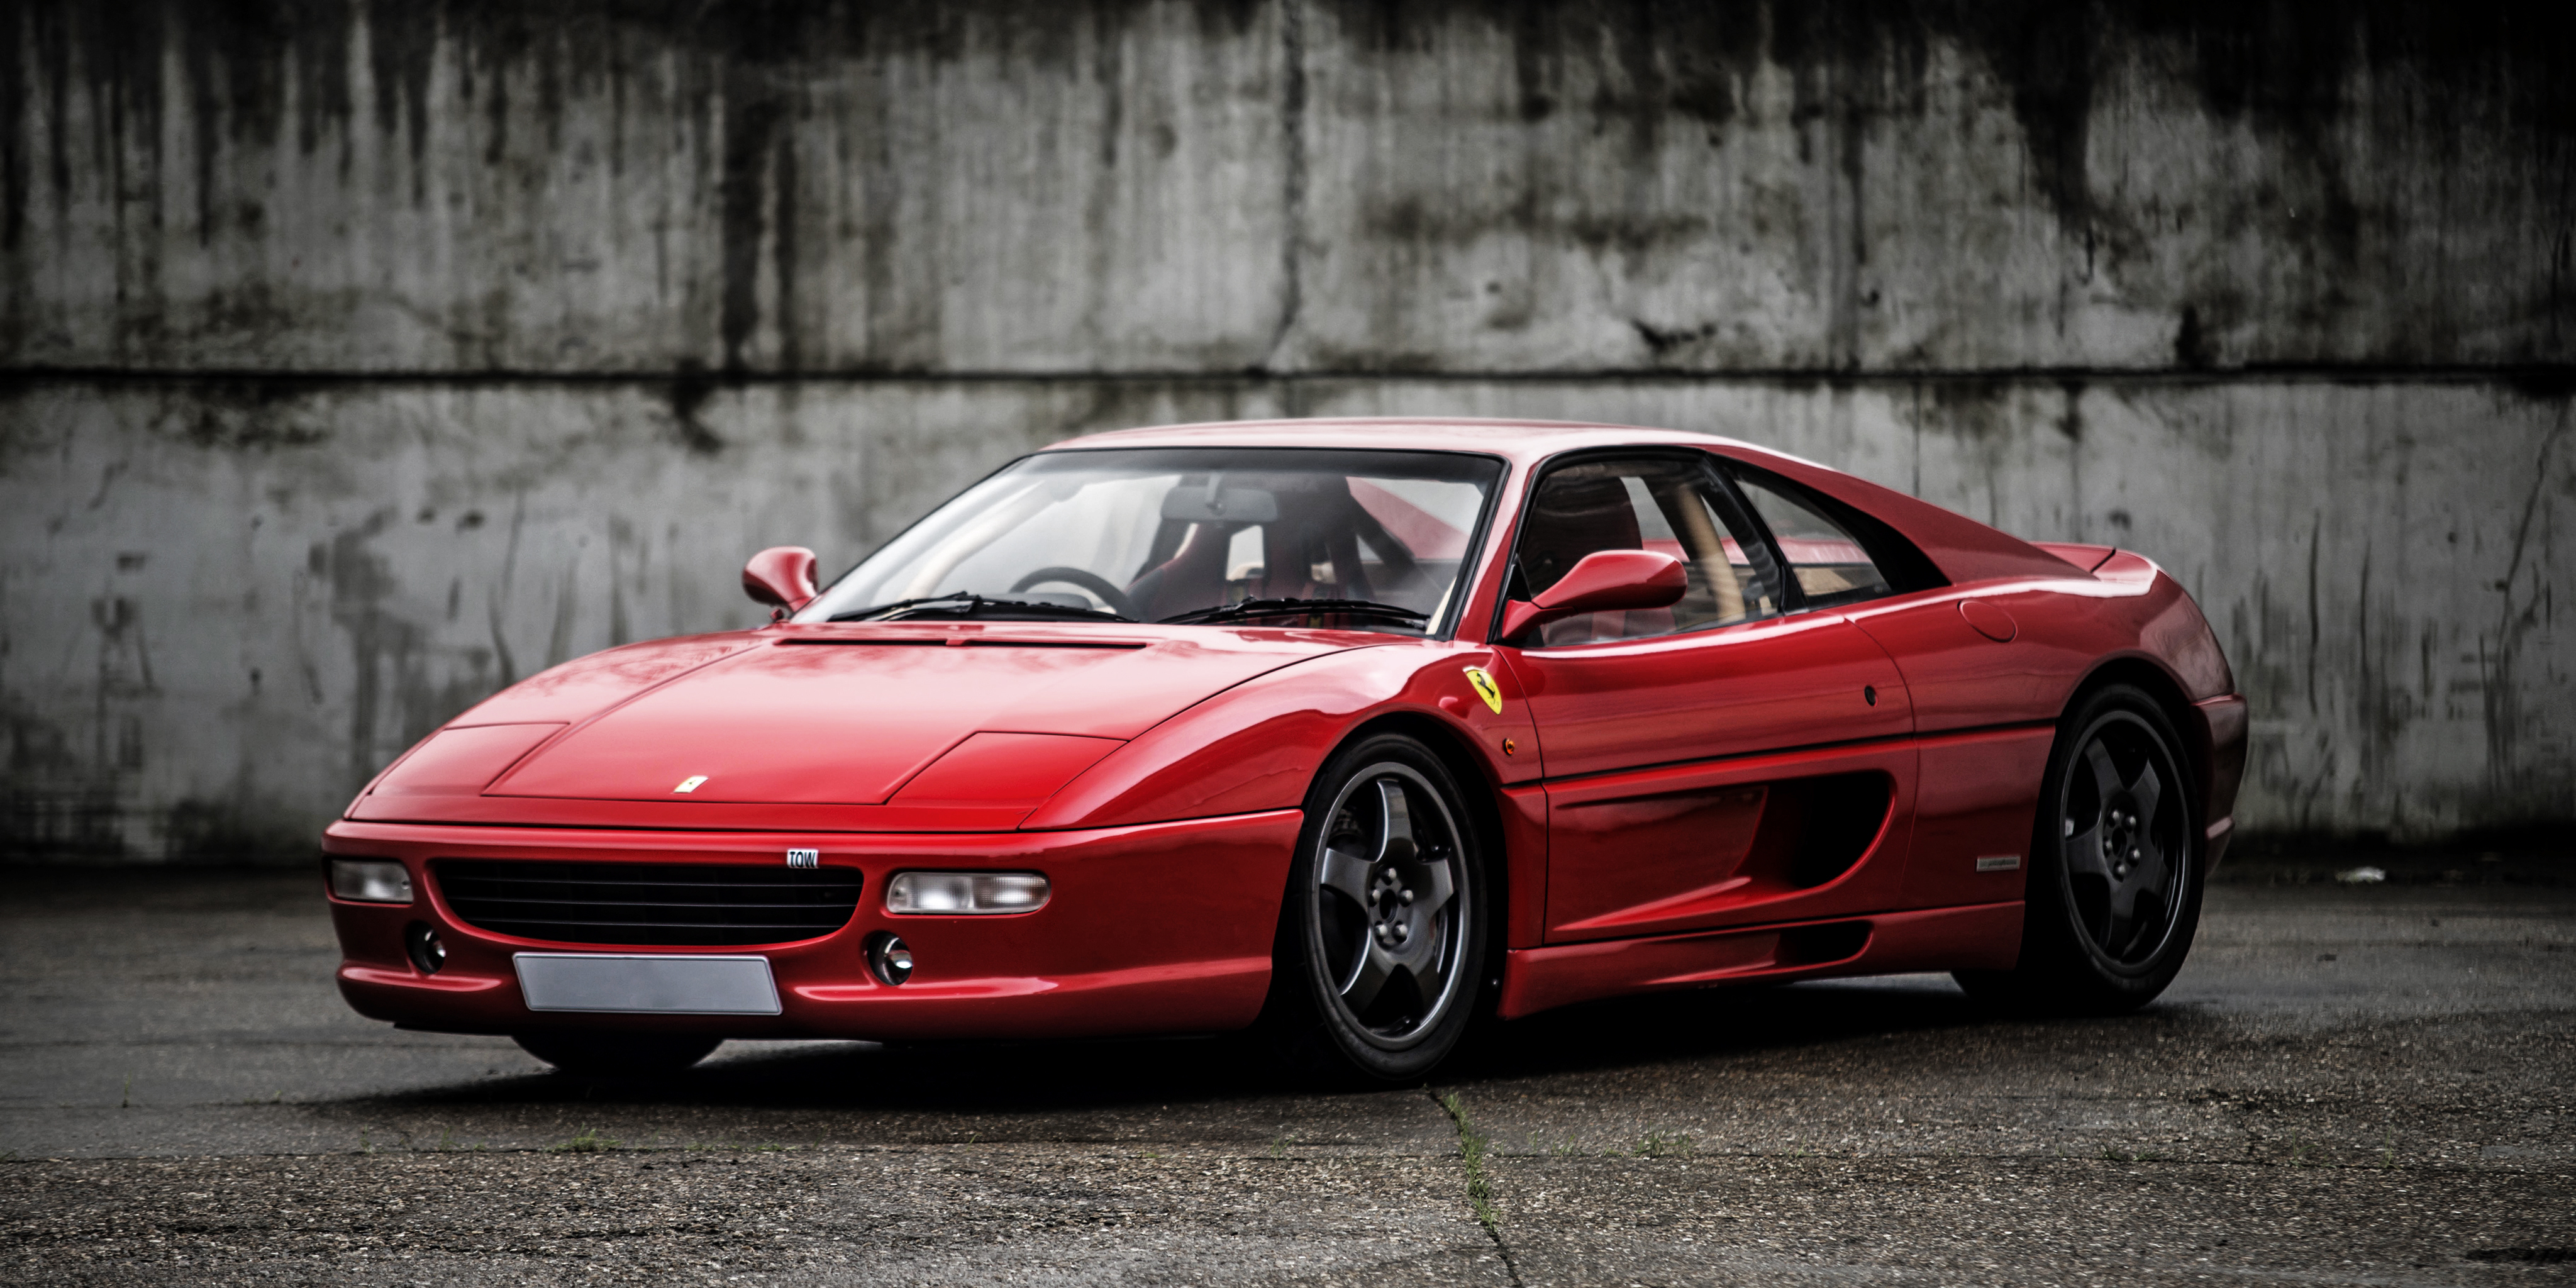 Ferrari F355 Wallpapers Images Photos Pictures Backgrounds